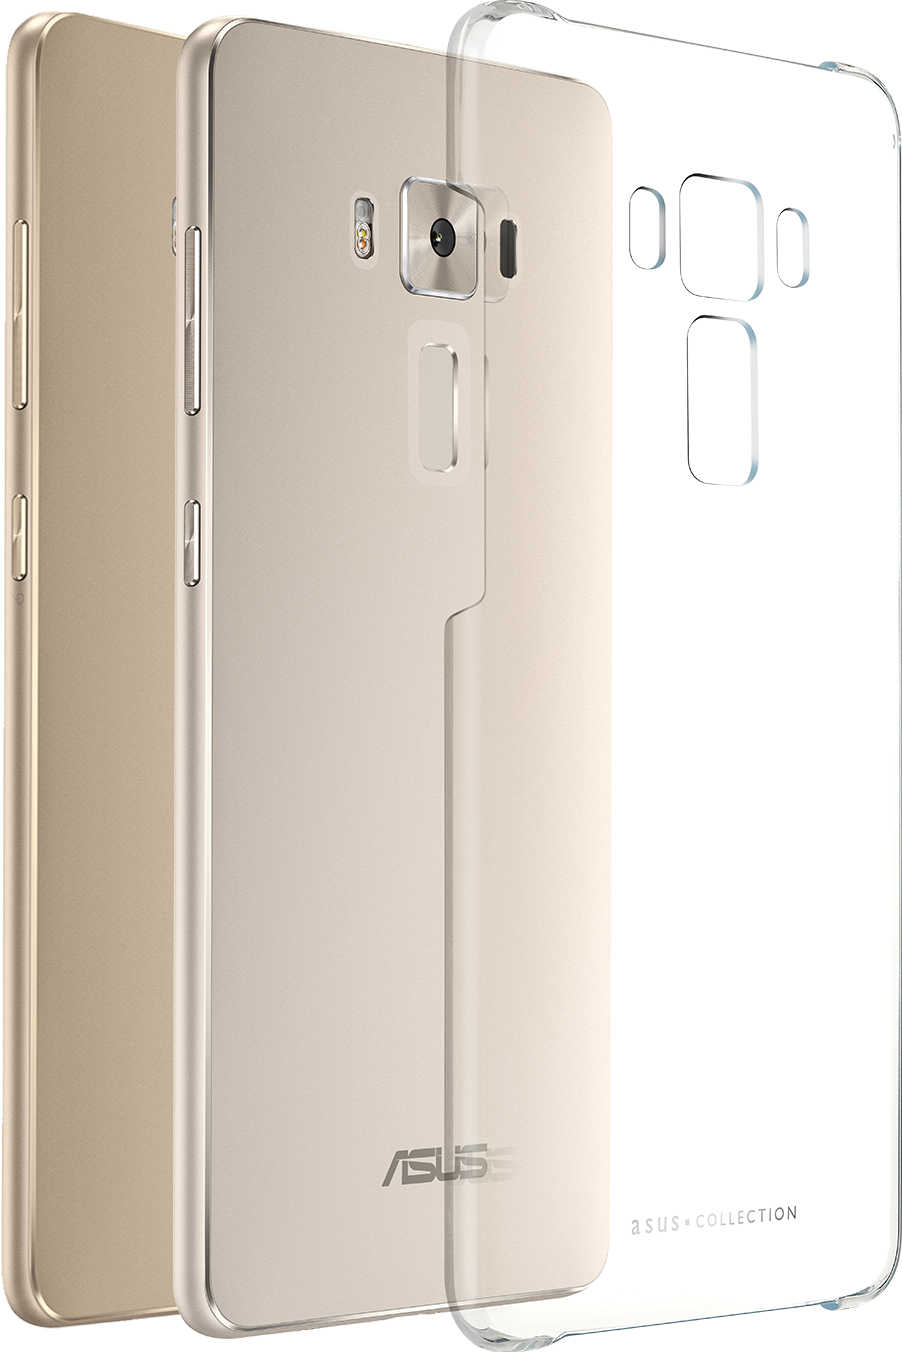 Zenfone 3 Deluxe Clear Case Zs570kl Phone Accessories Asus Precision Molded For The Perfect Fit